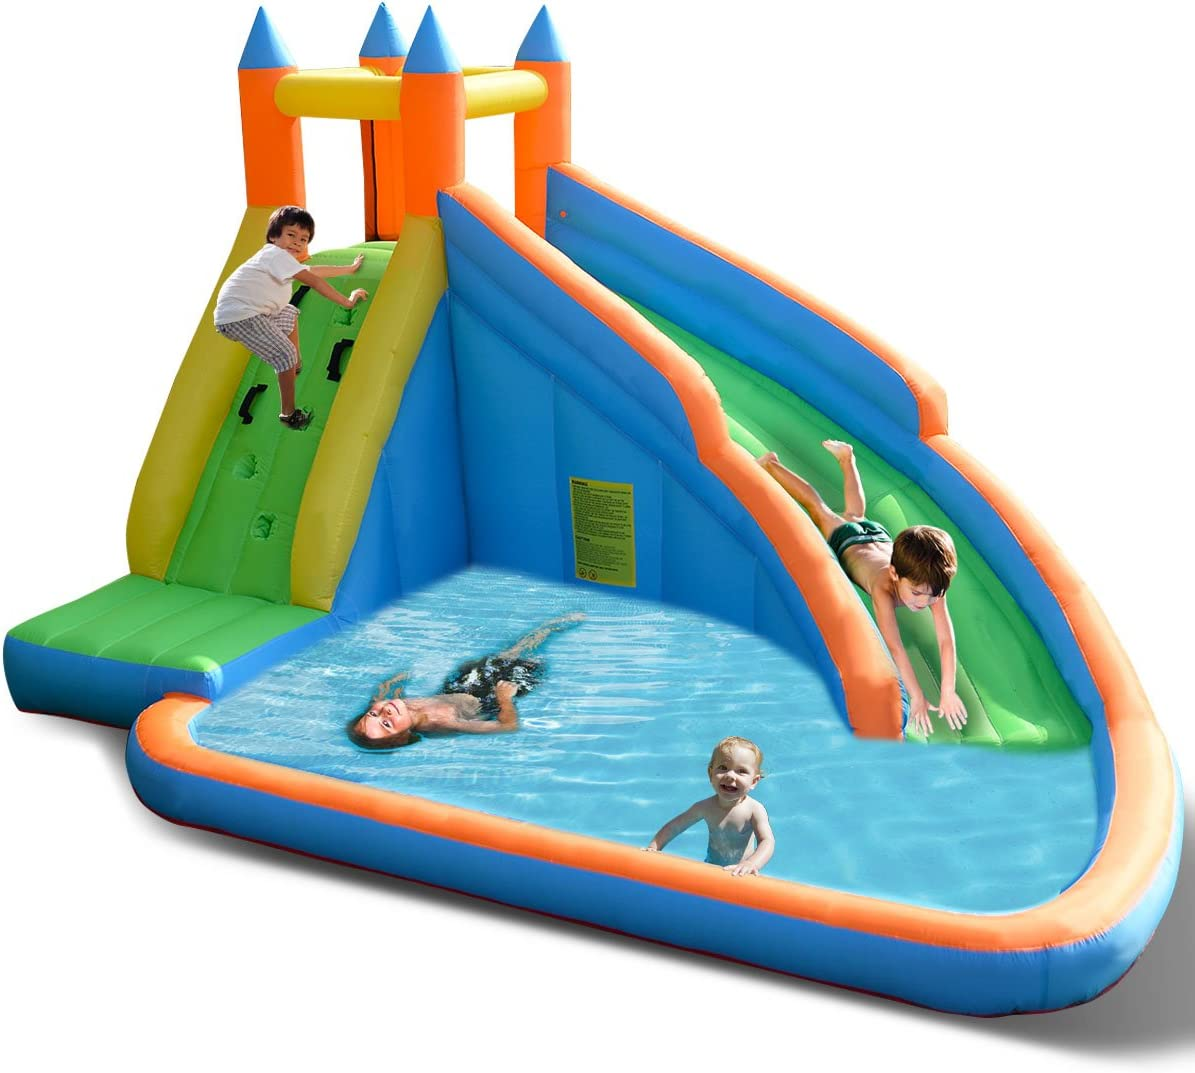 Costzon Inflatable Slide Bouncer, Water Pool with Long Slide, Climbing Wall